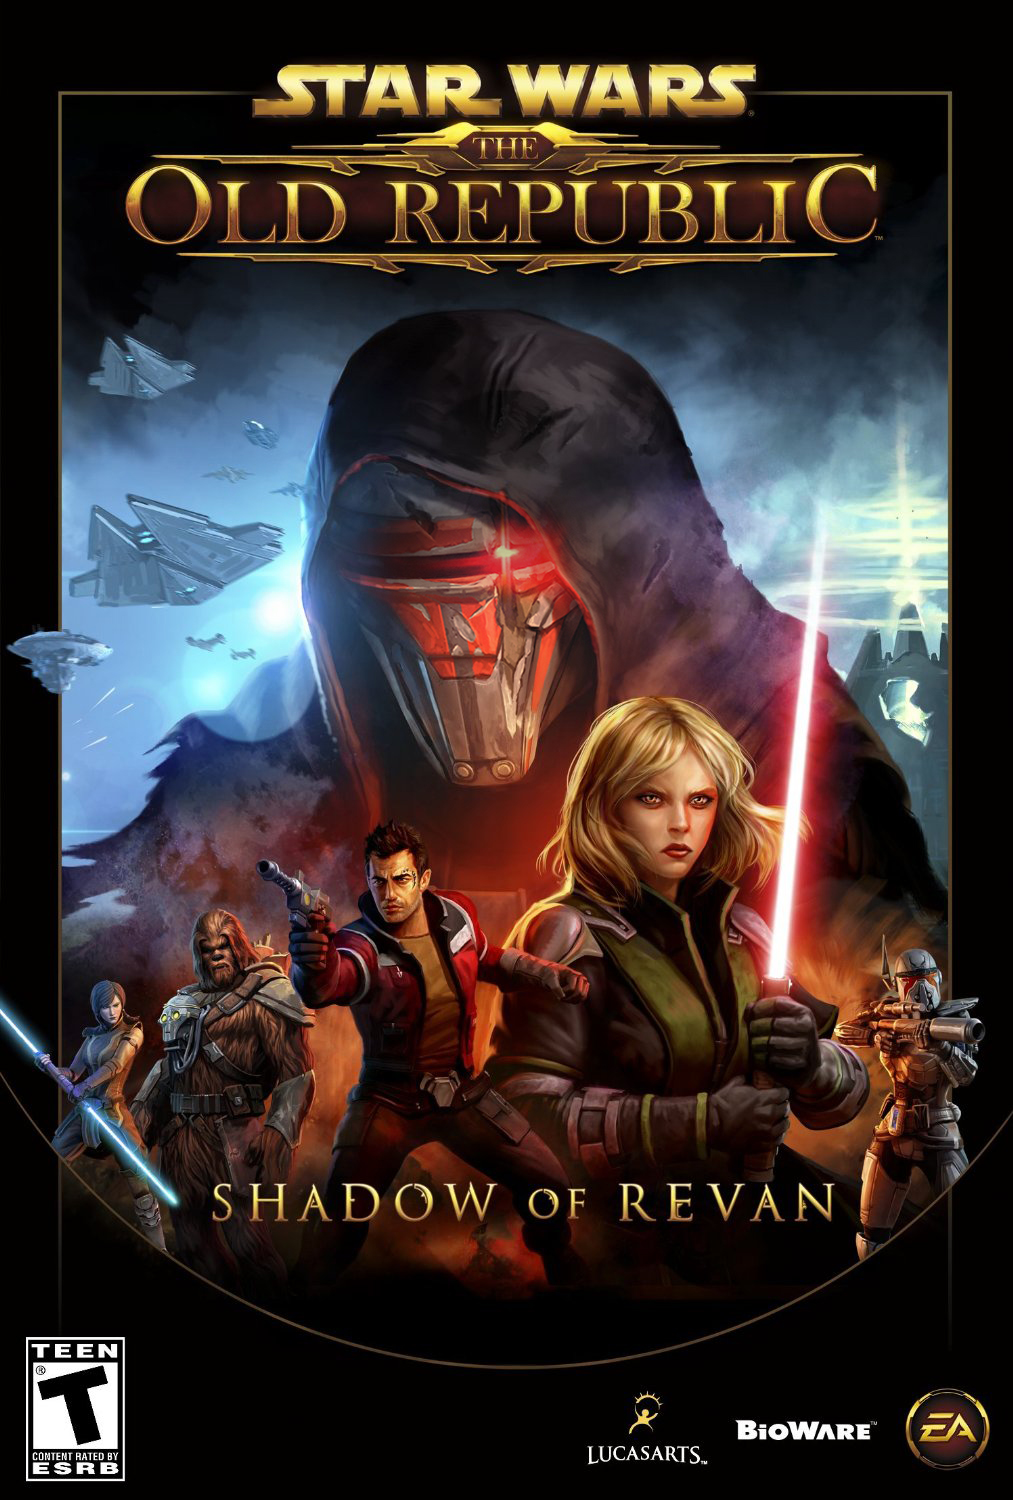 an analysis of movie star battles a good old republic A page for describing characters: star wars the old republic major characters main page republic class specific characters imperial class specific.